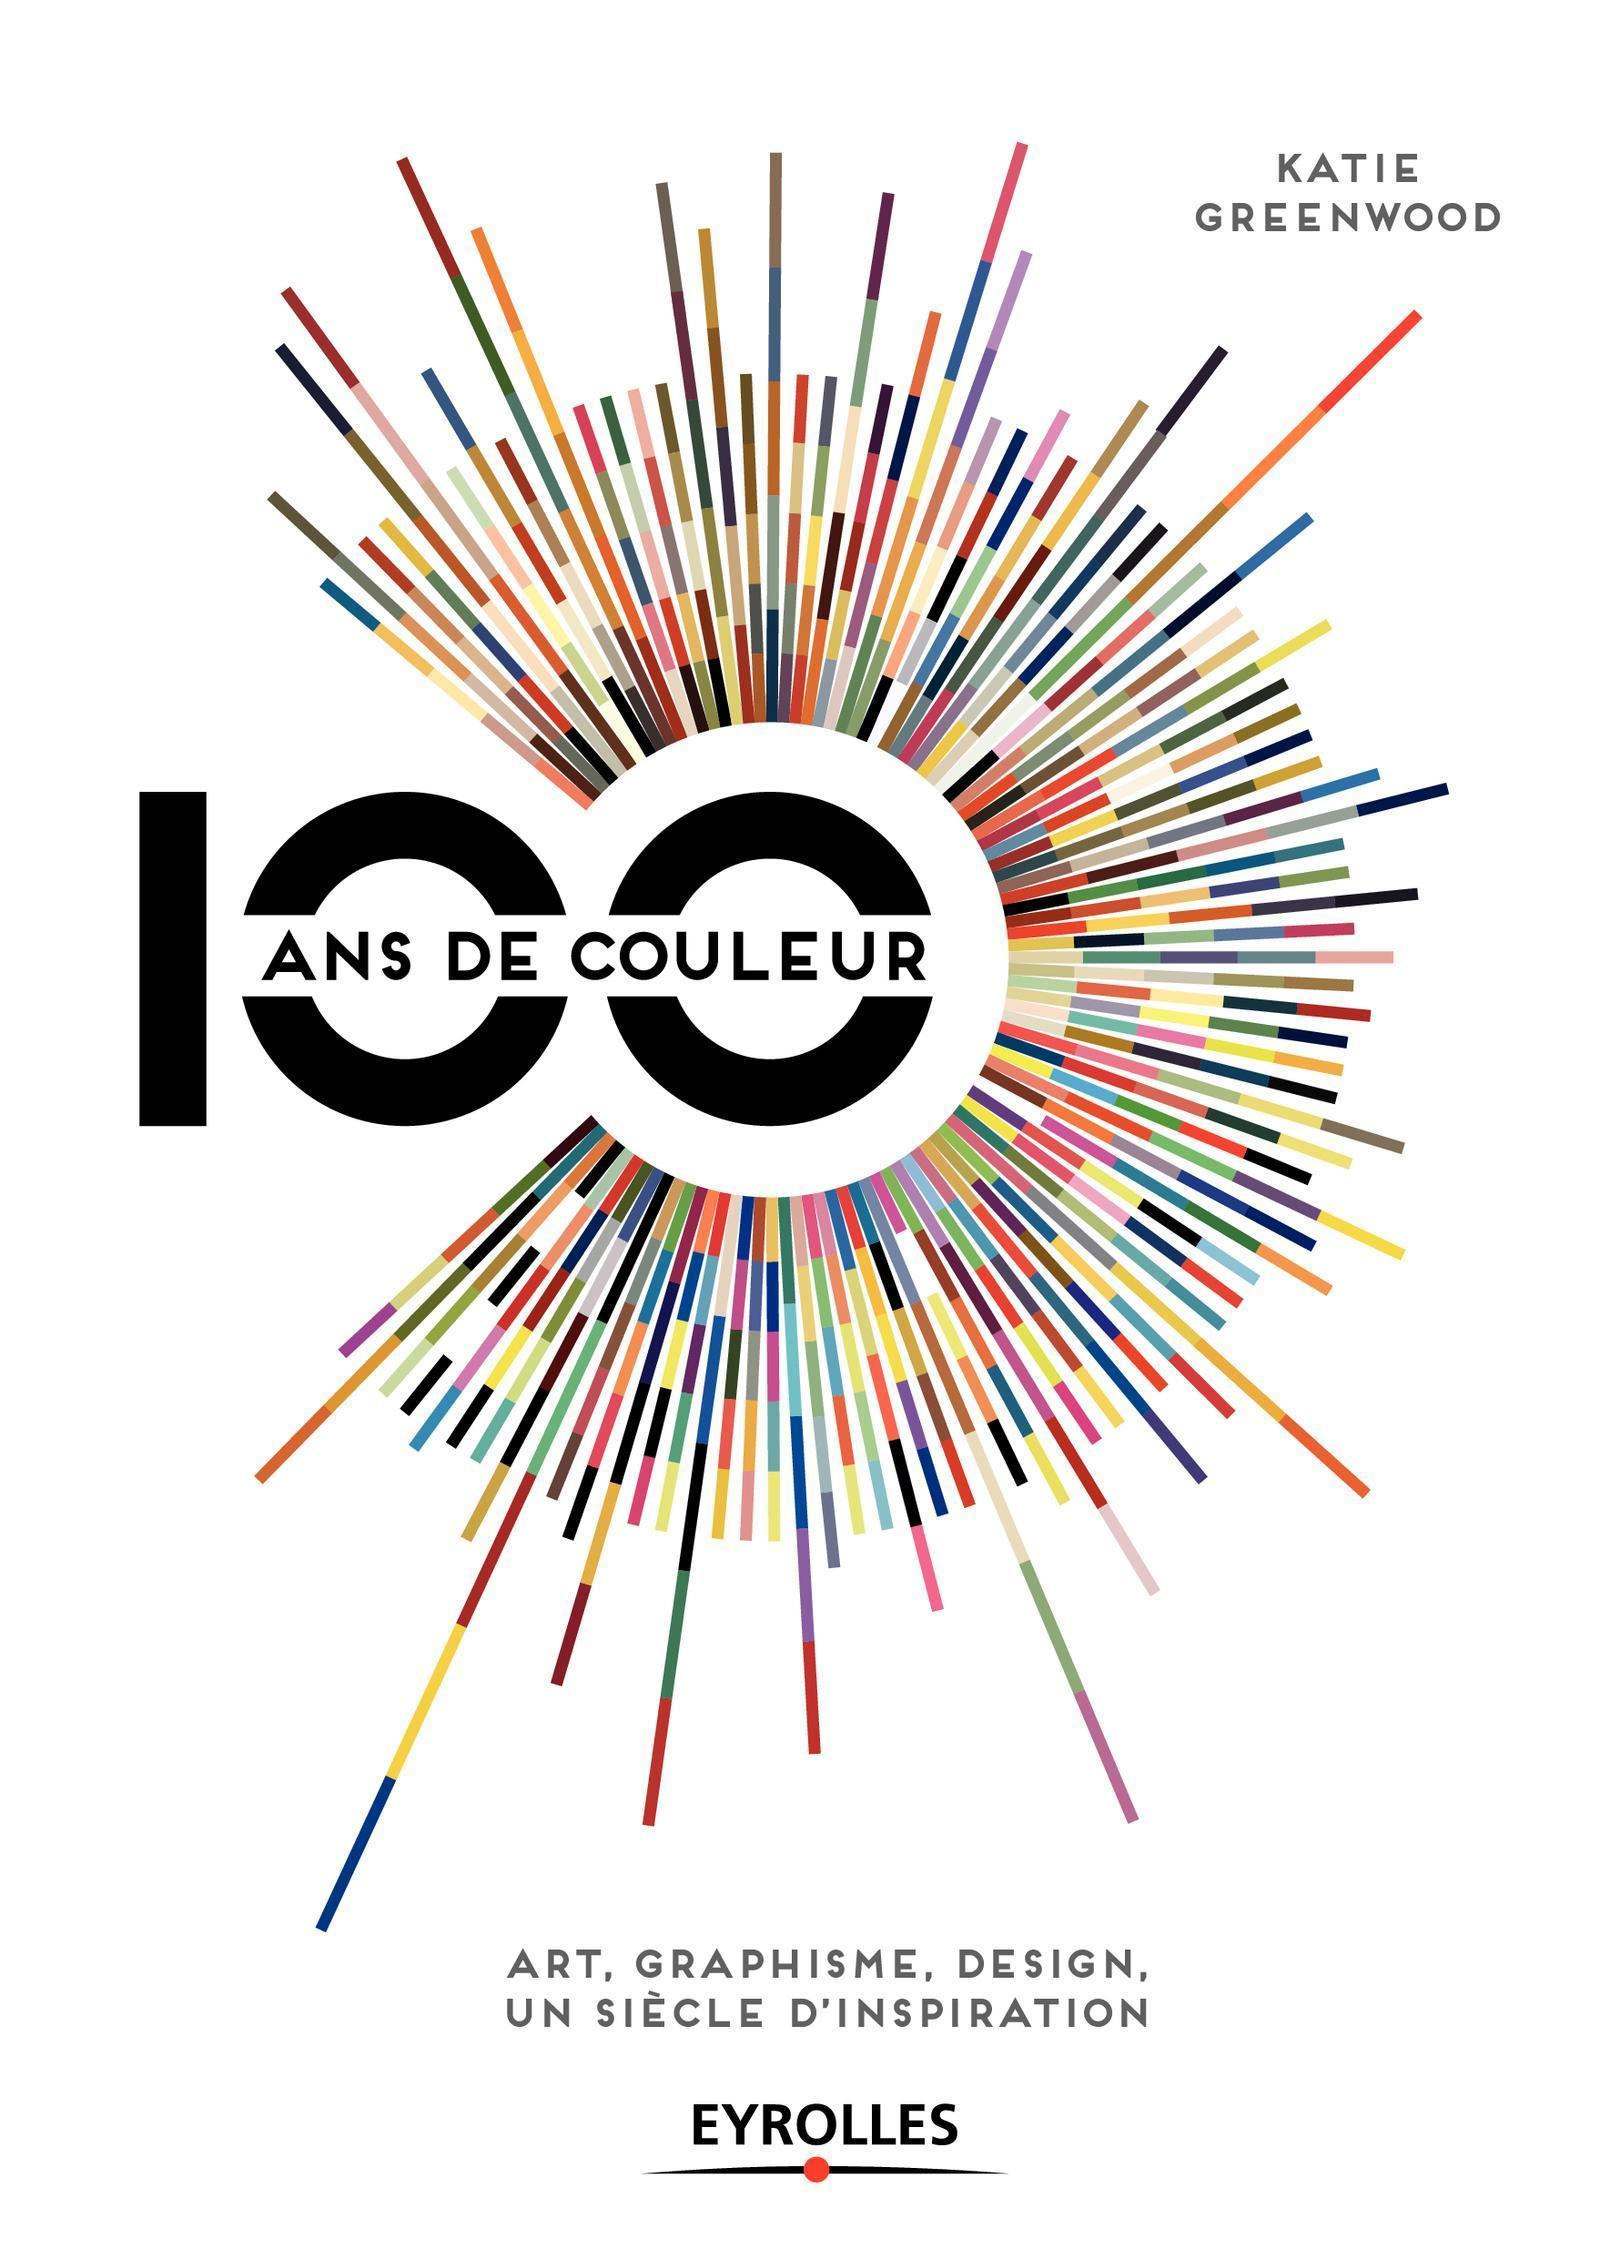 100 ANS DE COULEUR ART, GRAPHISME, DESIGN, UN SIECLE D'INSPIRATION - ART, GRAPHISME, DESIGN, UN SIEC